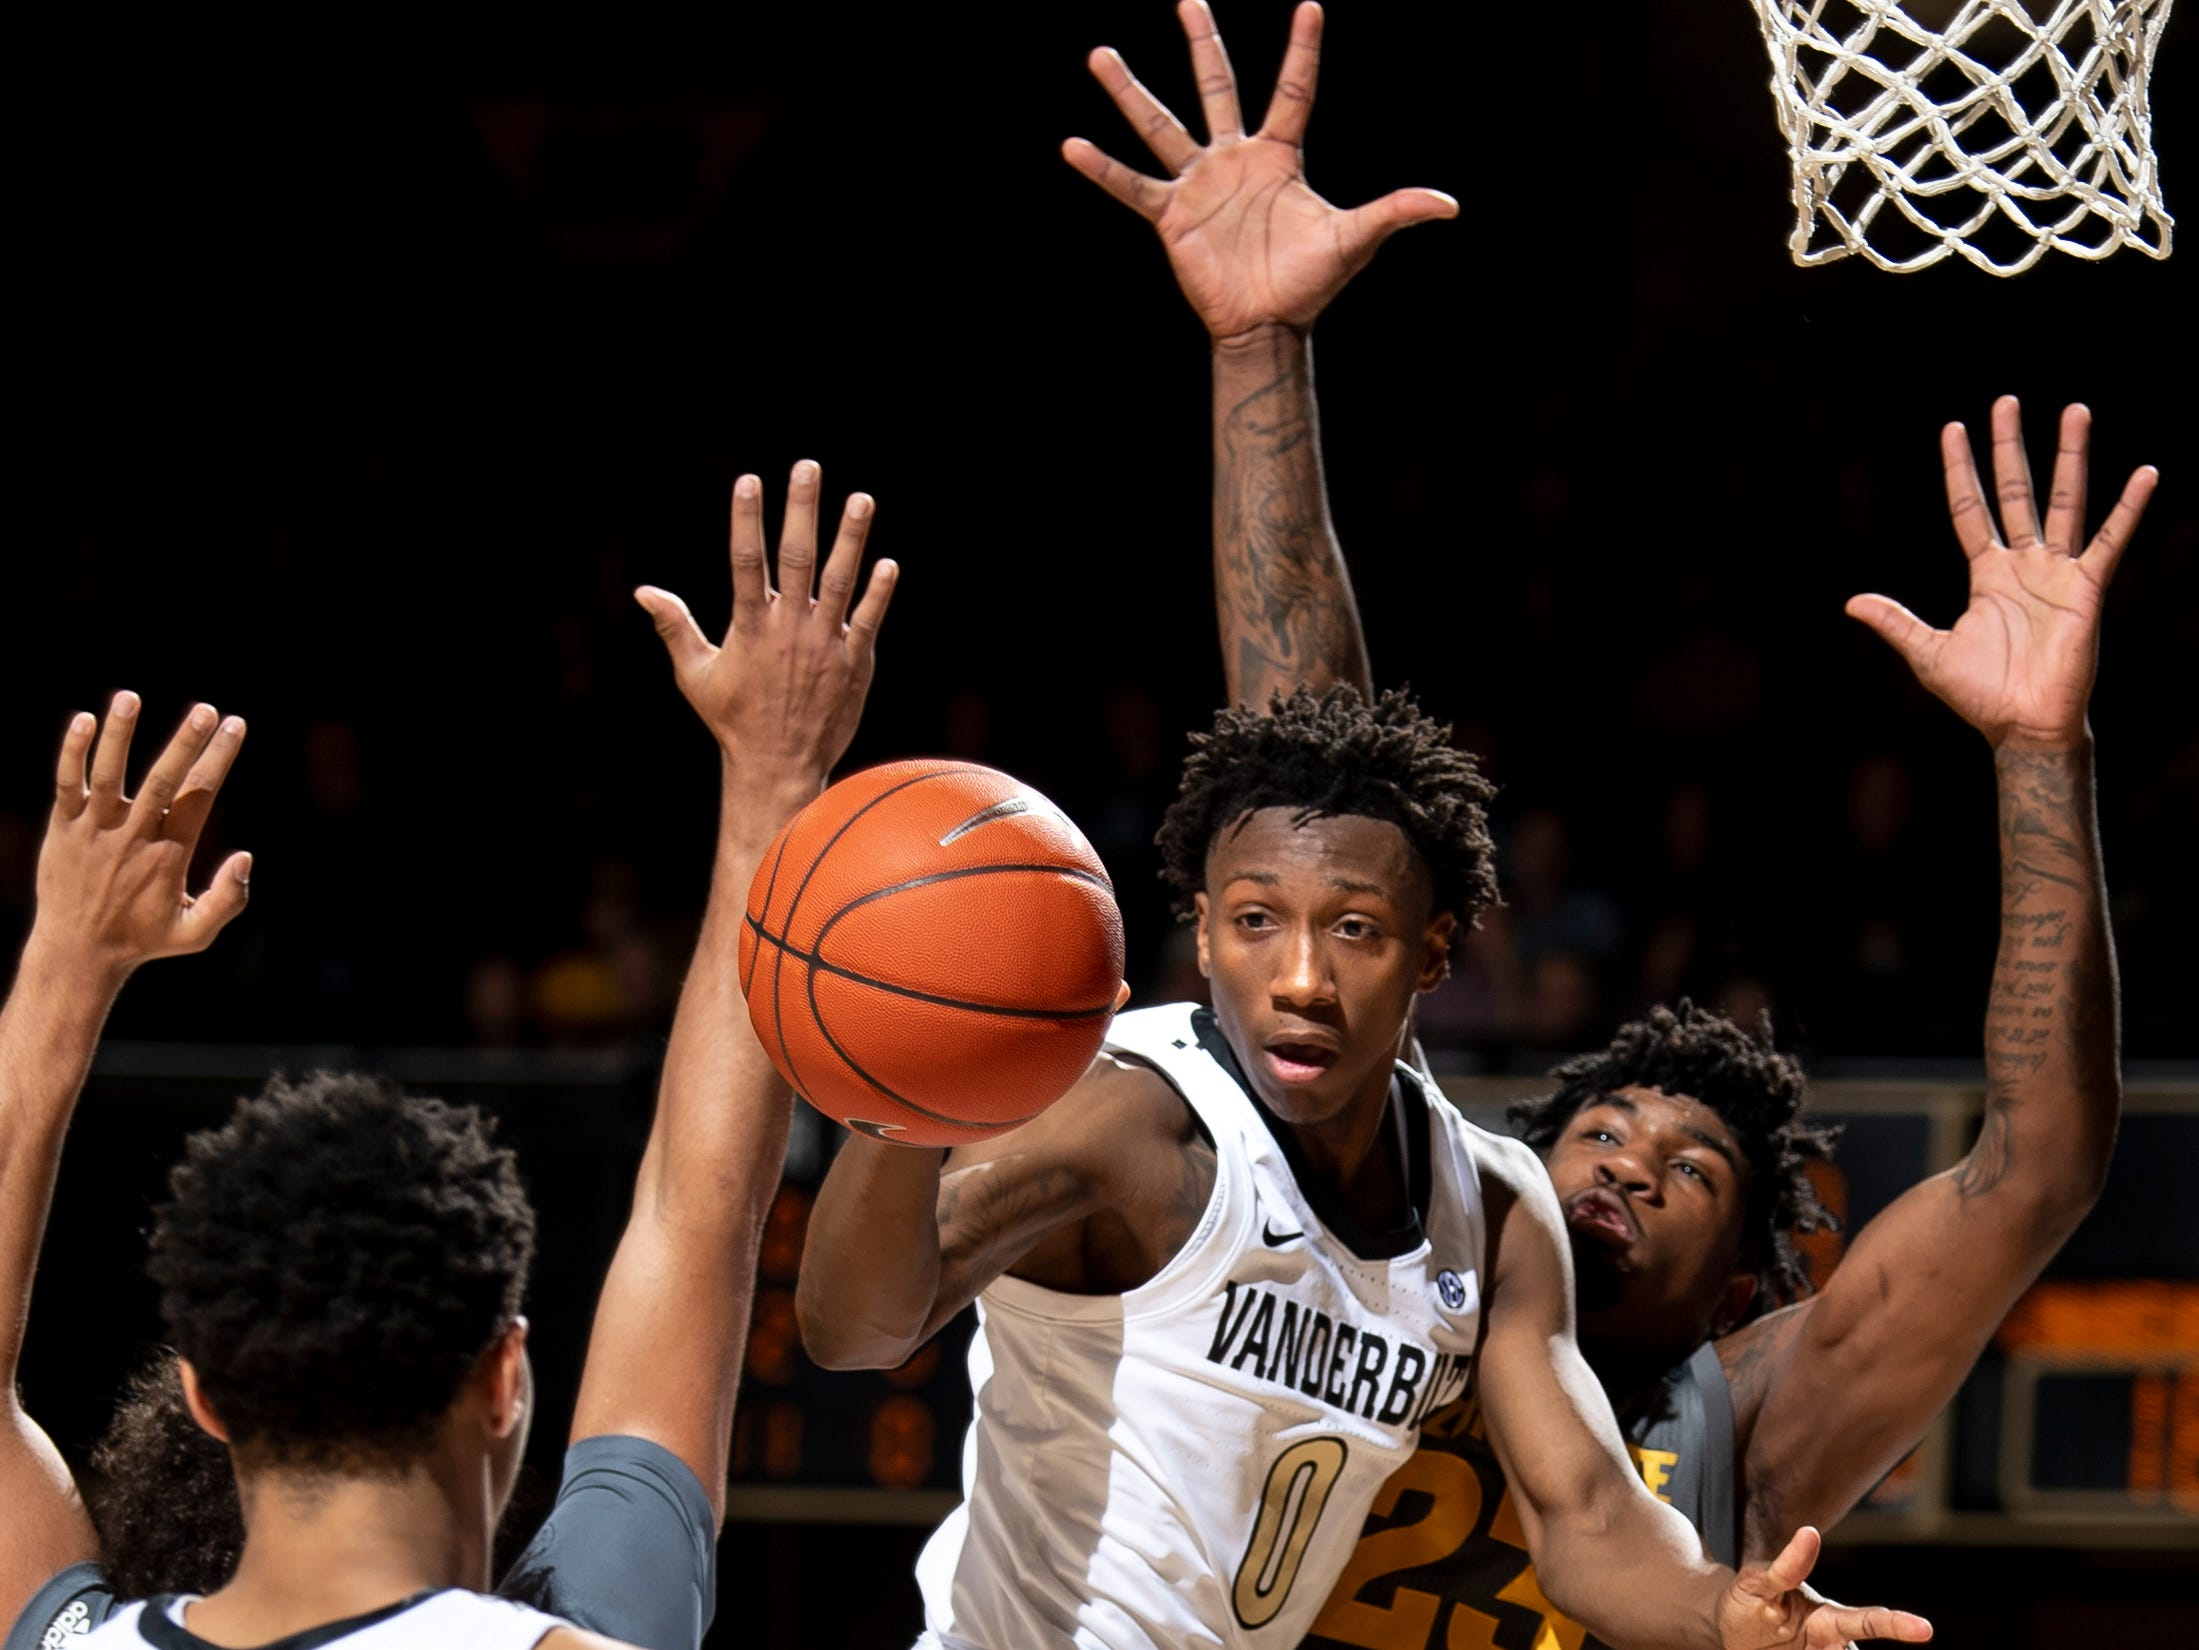 Vanderbilt guard Saben Lee (0) passes past Arizona State forward Romello White (23) during the first half at Memorial Gym in Nashville, Tenn., Monday, Dec. 17, 2018.